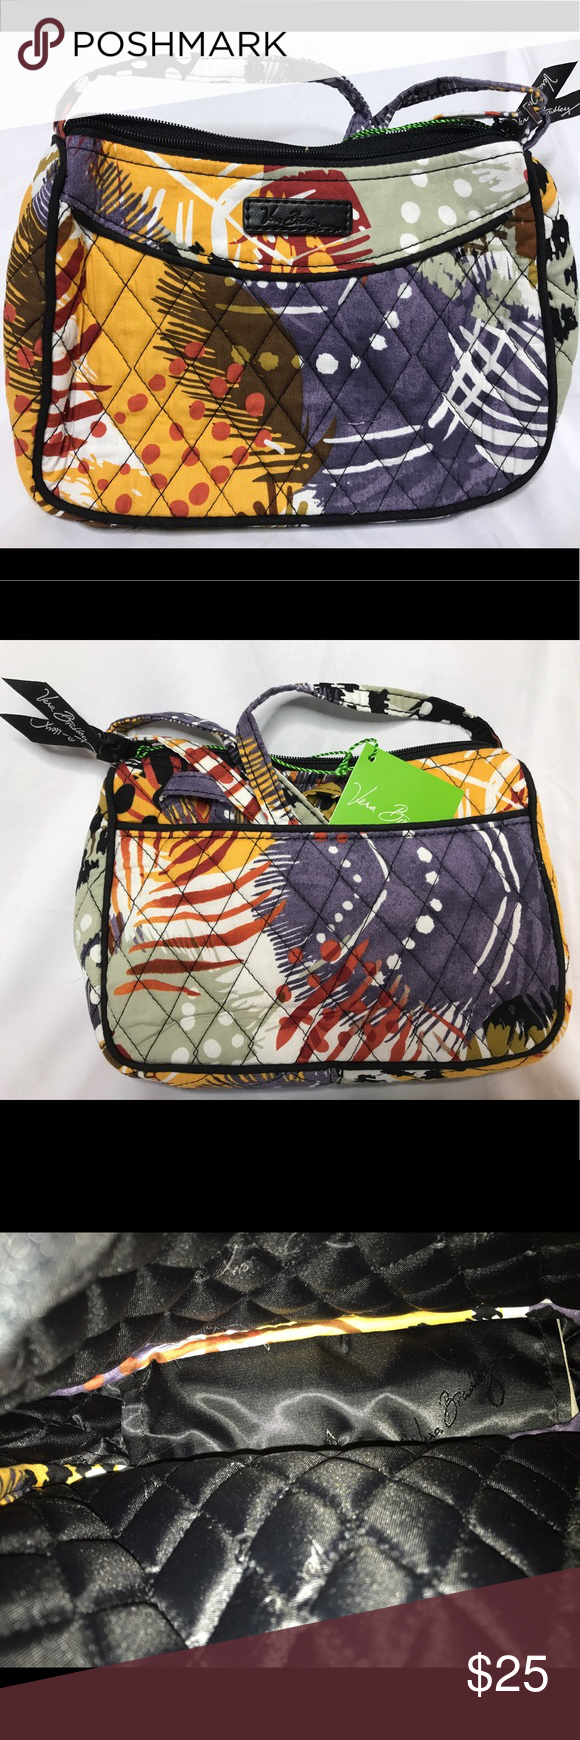 27104d62cdc0 Vera Bradley Painted Feathers Little Crossbody NWT This bag has a slip in  pocket in the back exterior. There are no interior pockets.